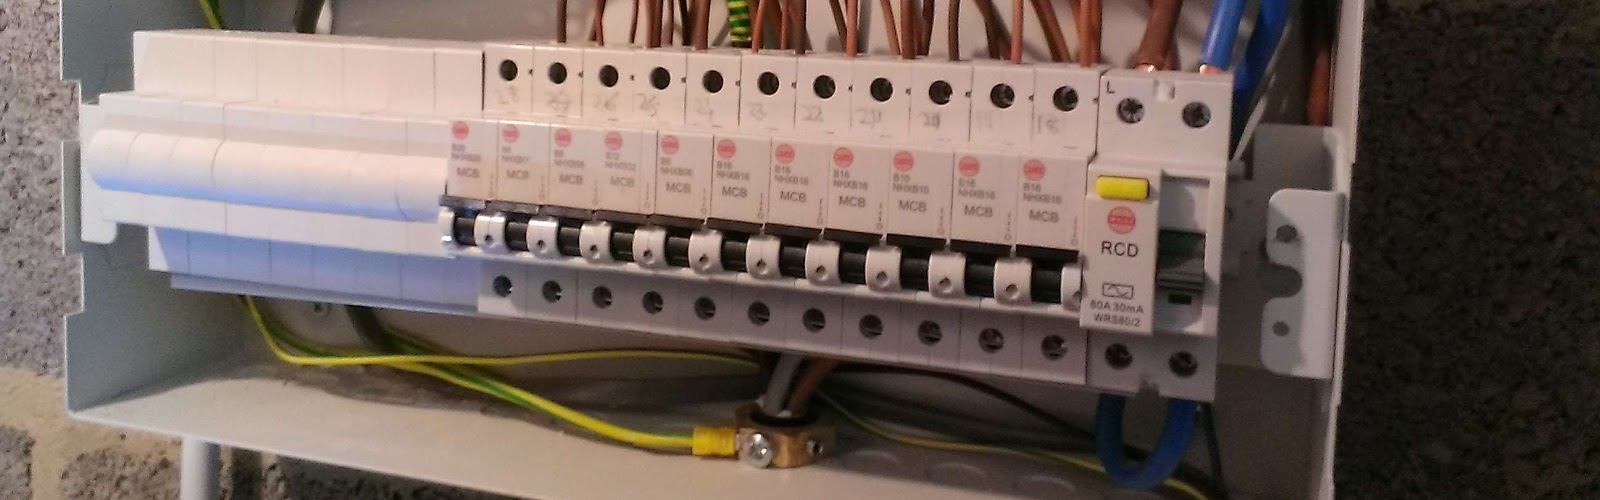 Electrical Services In West London | Westlon Electrical Contractors Ltd